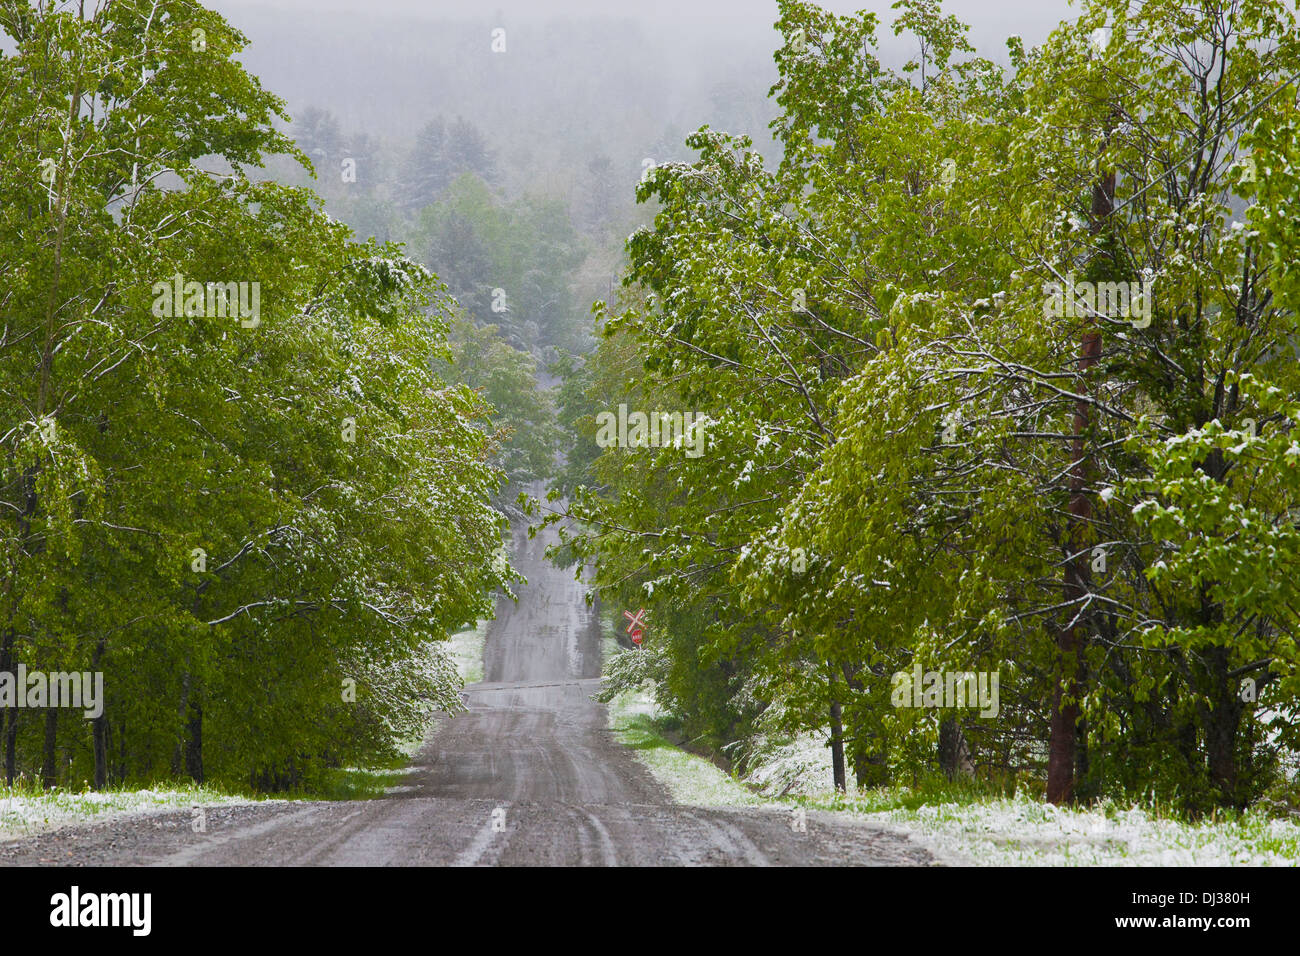 Late Spring Snowfall On A Road; Ville De Lac Brome, Quebec, Canada - Stock Image